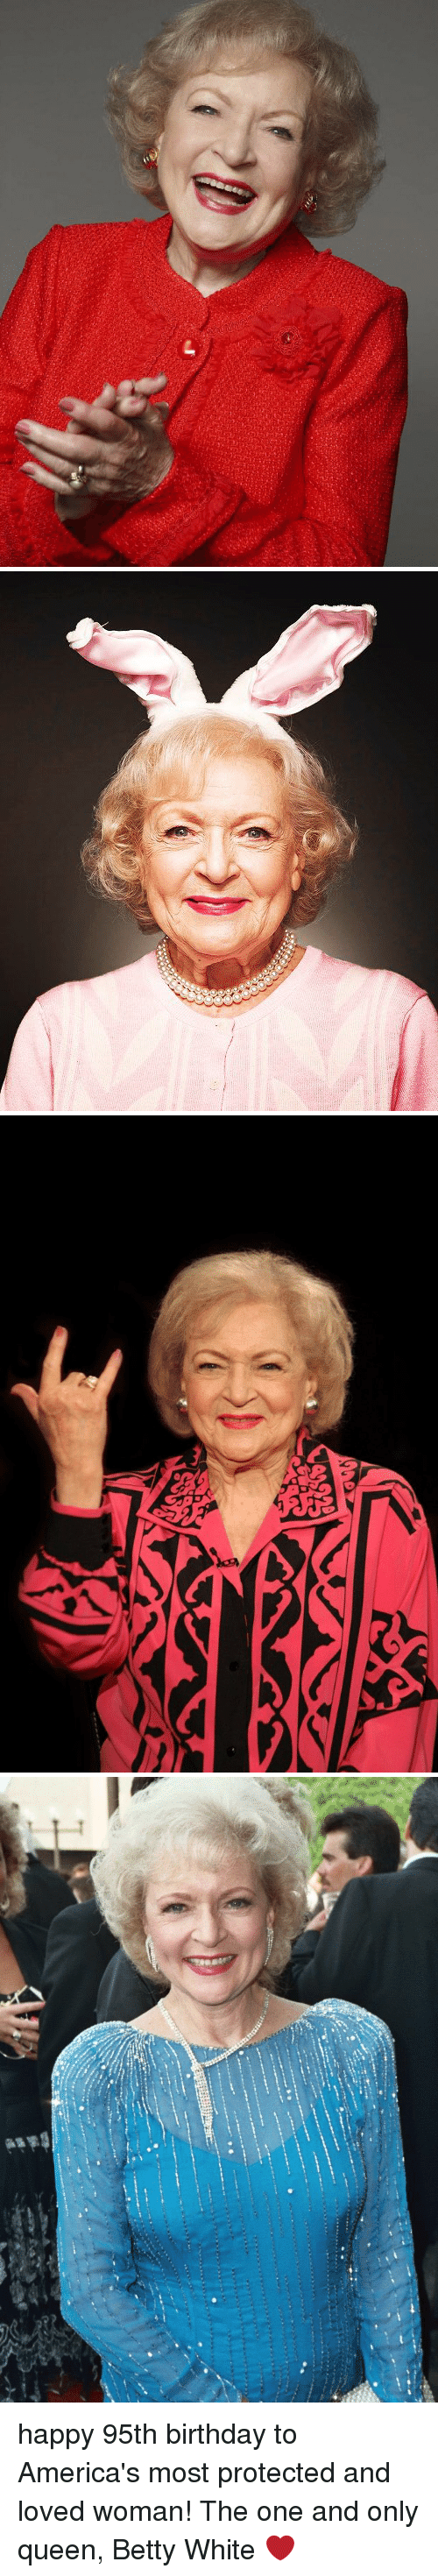 Betty White, Funny, and  the One and Only: happy 95th birthday to America's most protected and loved woman! The one and only queen, Betty White ❤️